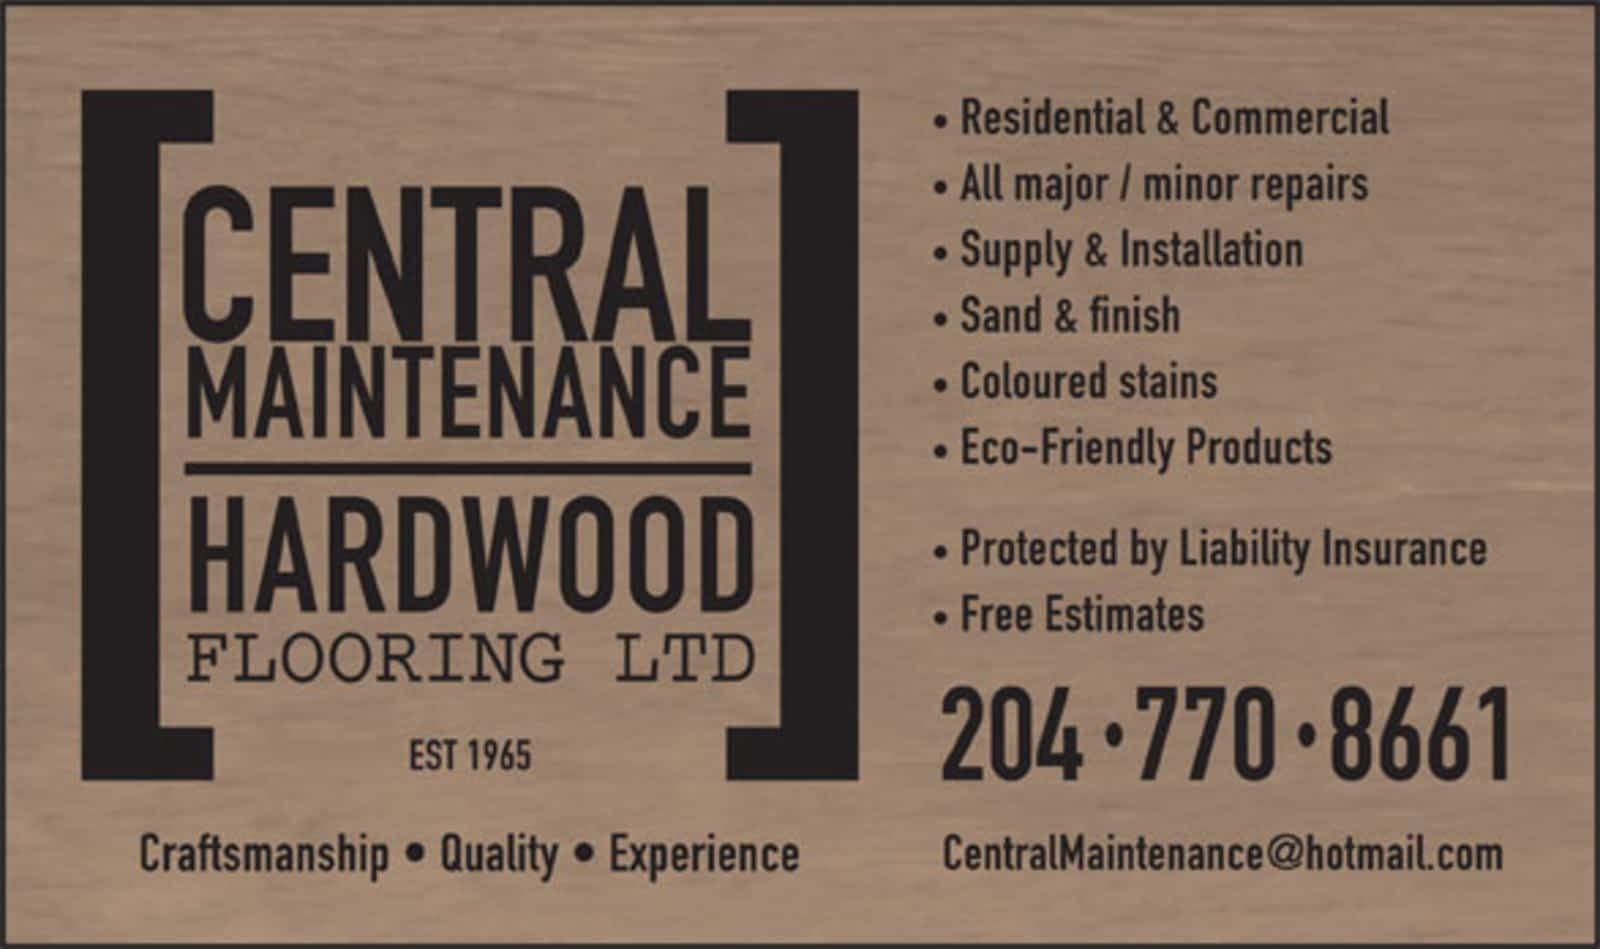 hardwood floor refinishing winnipeg of central maintenance hardwood flooring ltd opening hours box 35 pertaining to central maintenance hardwood flooring ltd opening hours box 35 grp 8 rr 2 dugald mb